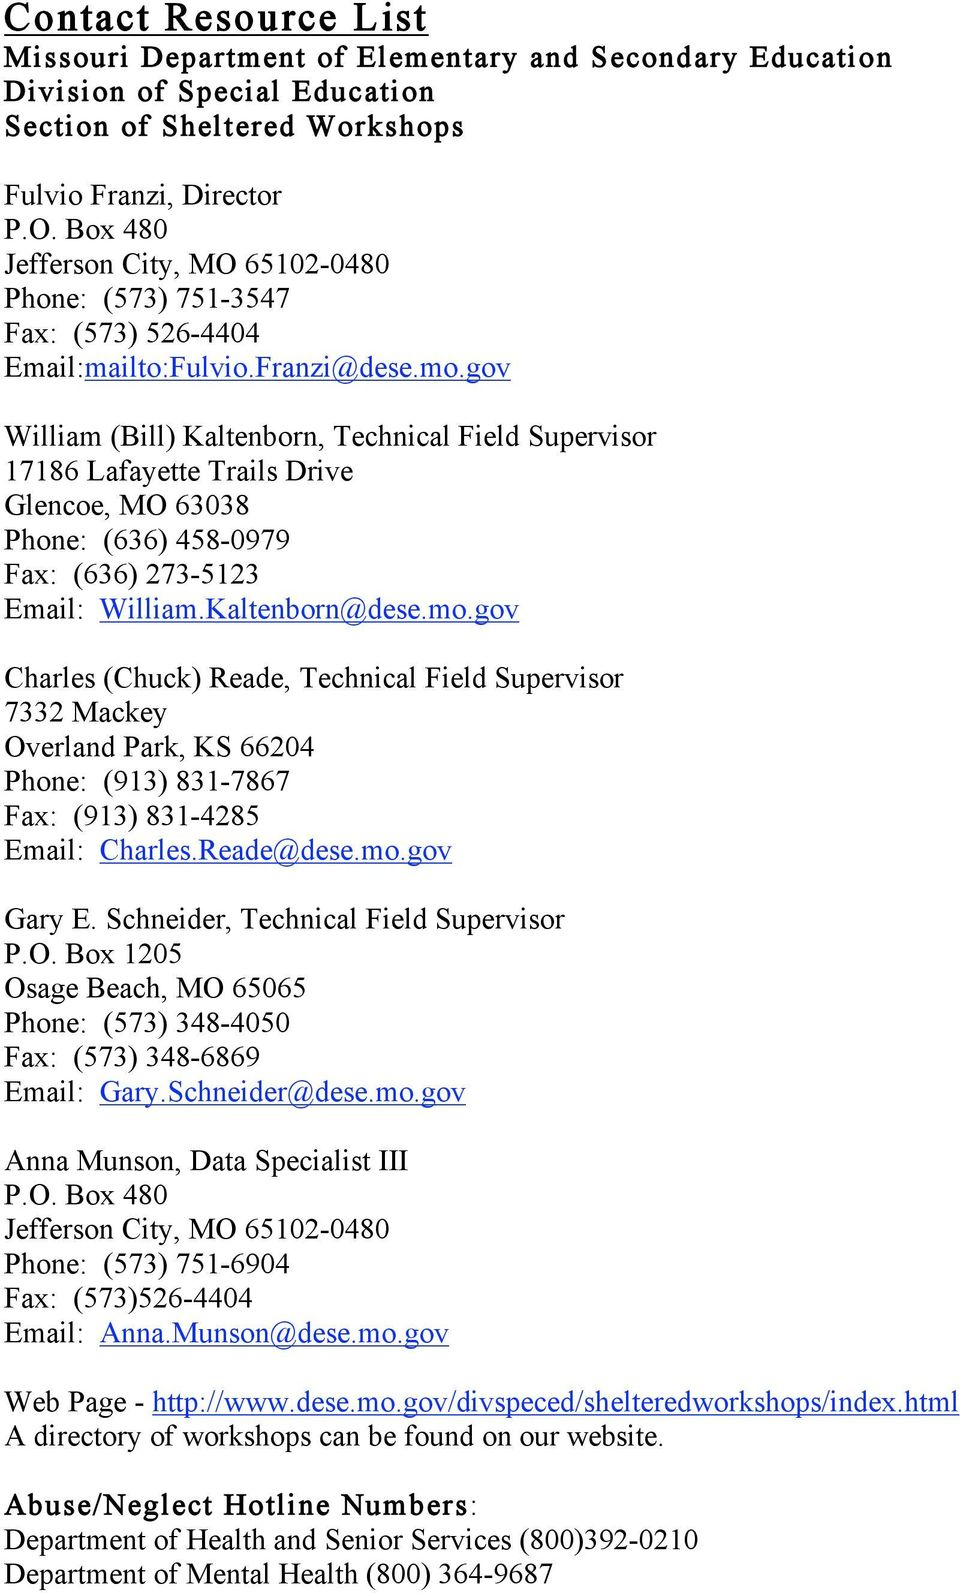 Contact Resource List Missouri Department Of Elementary And